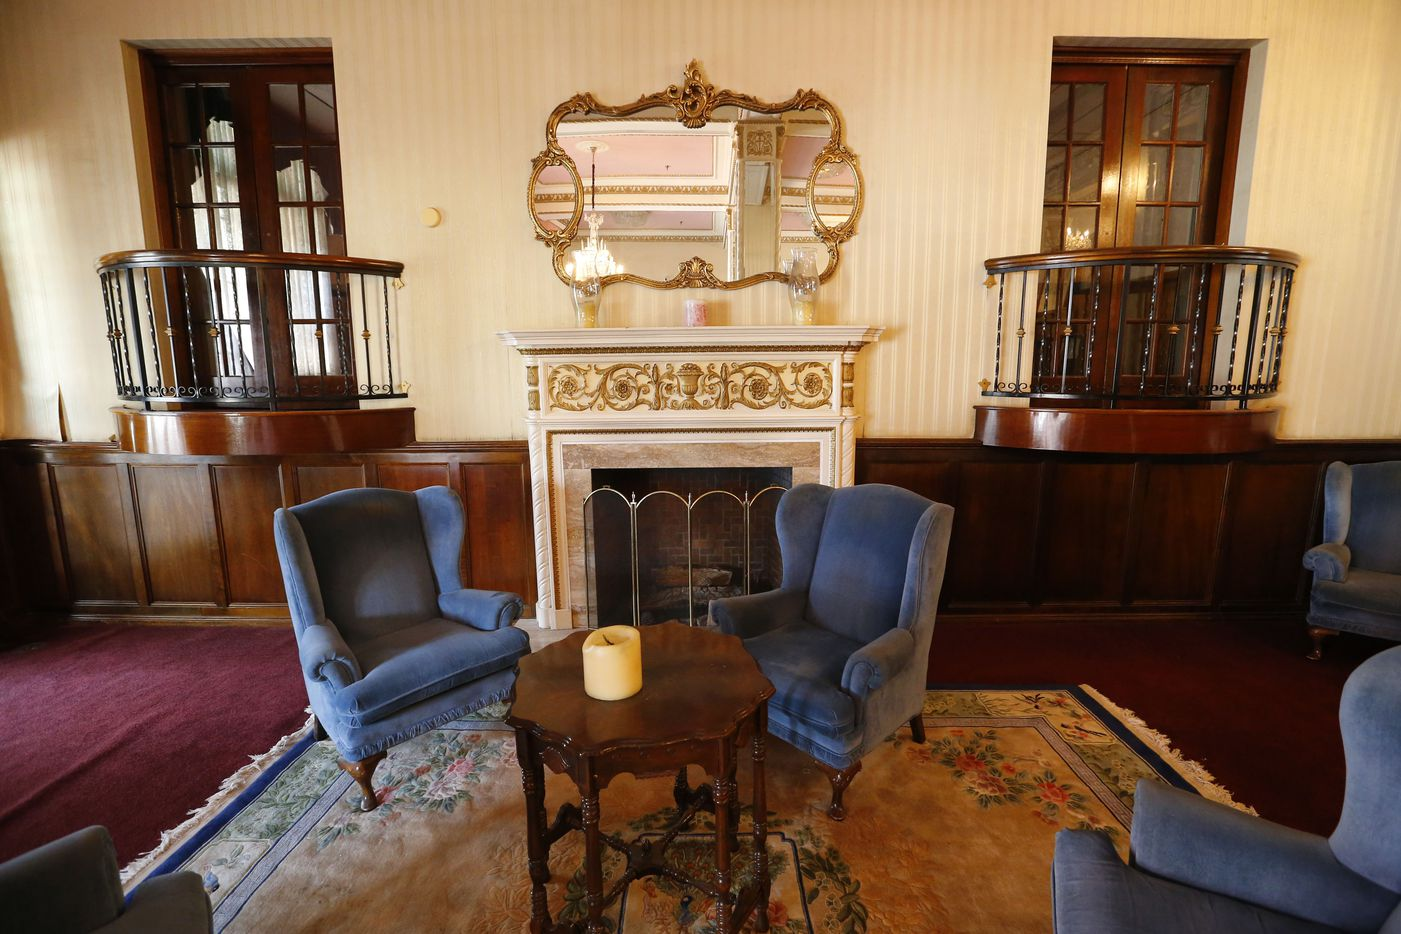 The Ambassador Hotel lobby, pictured on June 28, 2016.